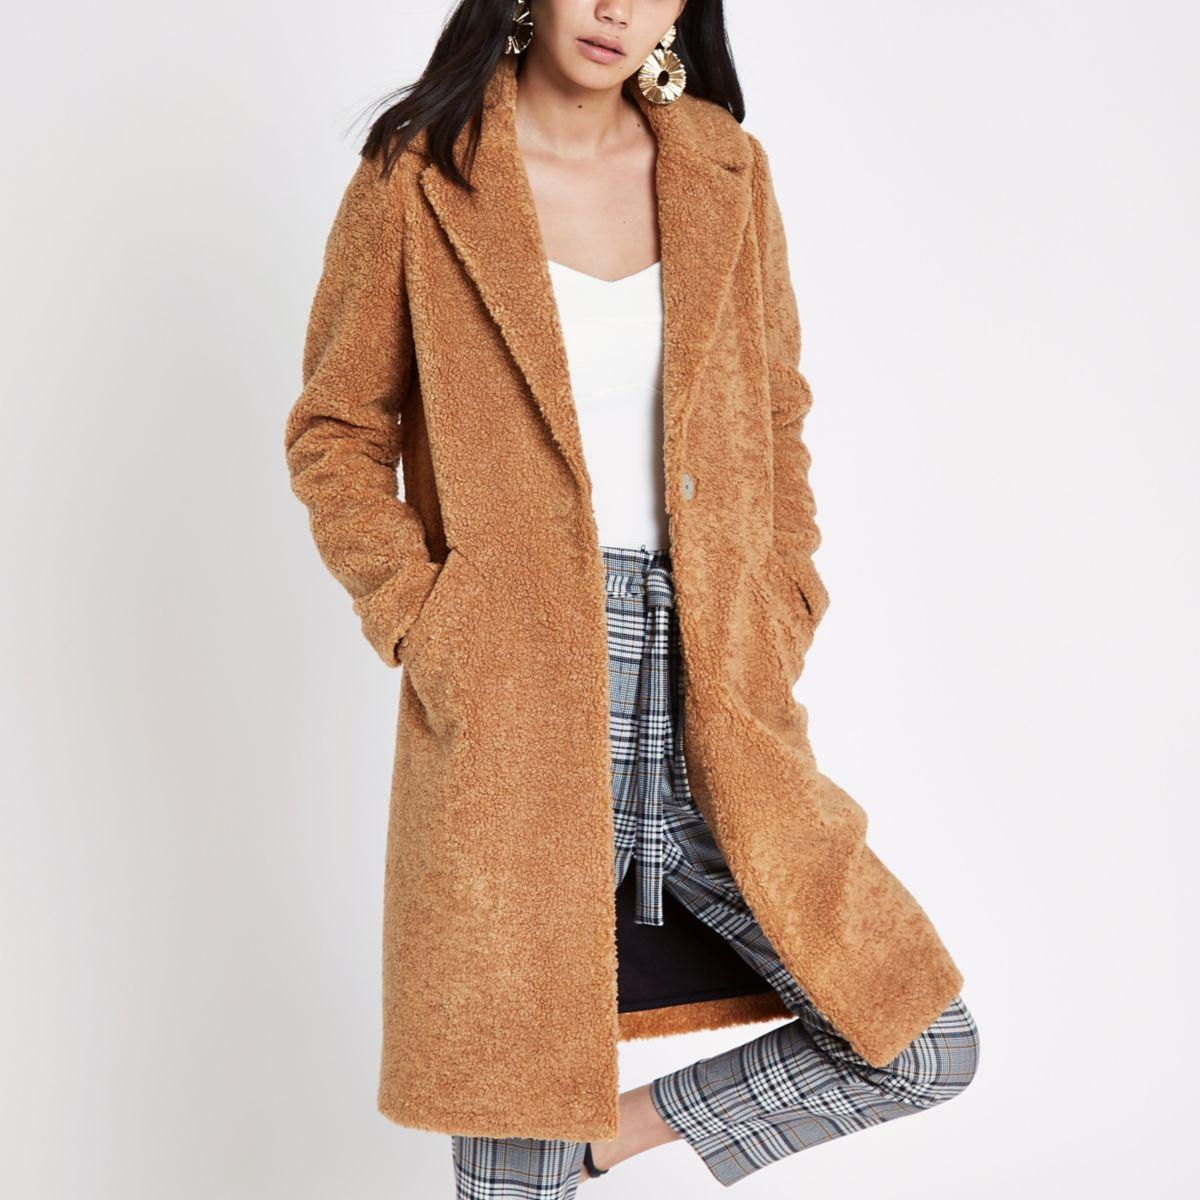 Light brown fleece coat